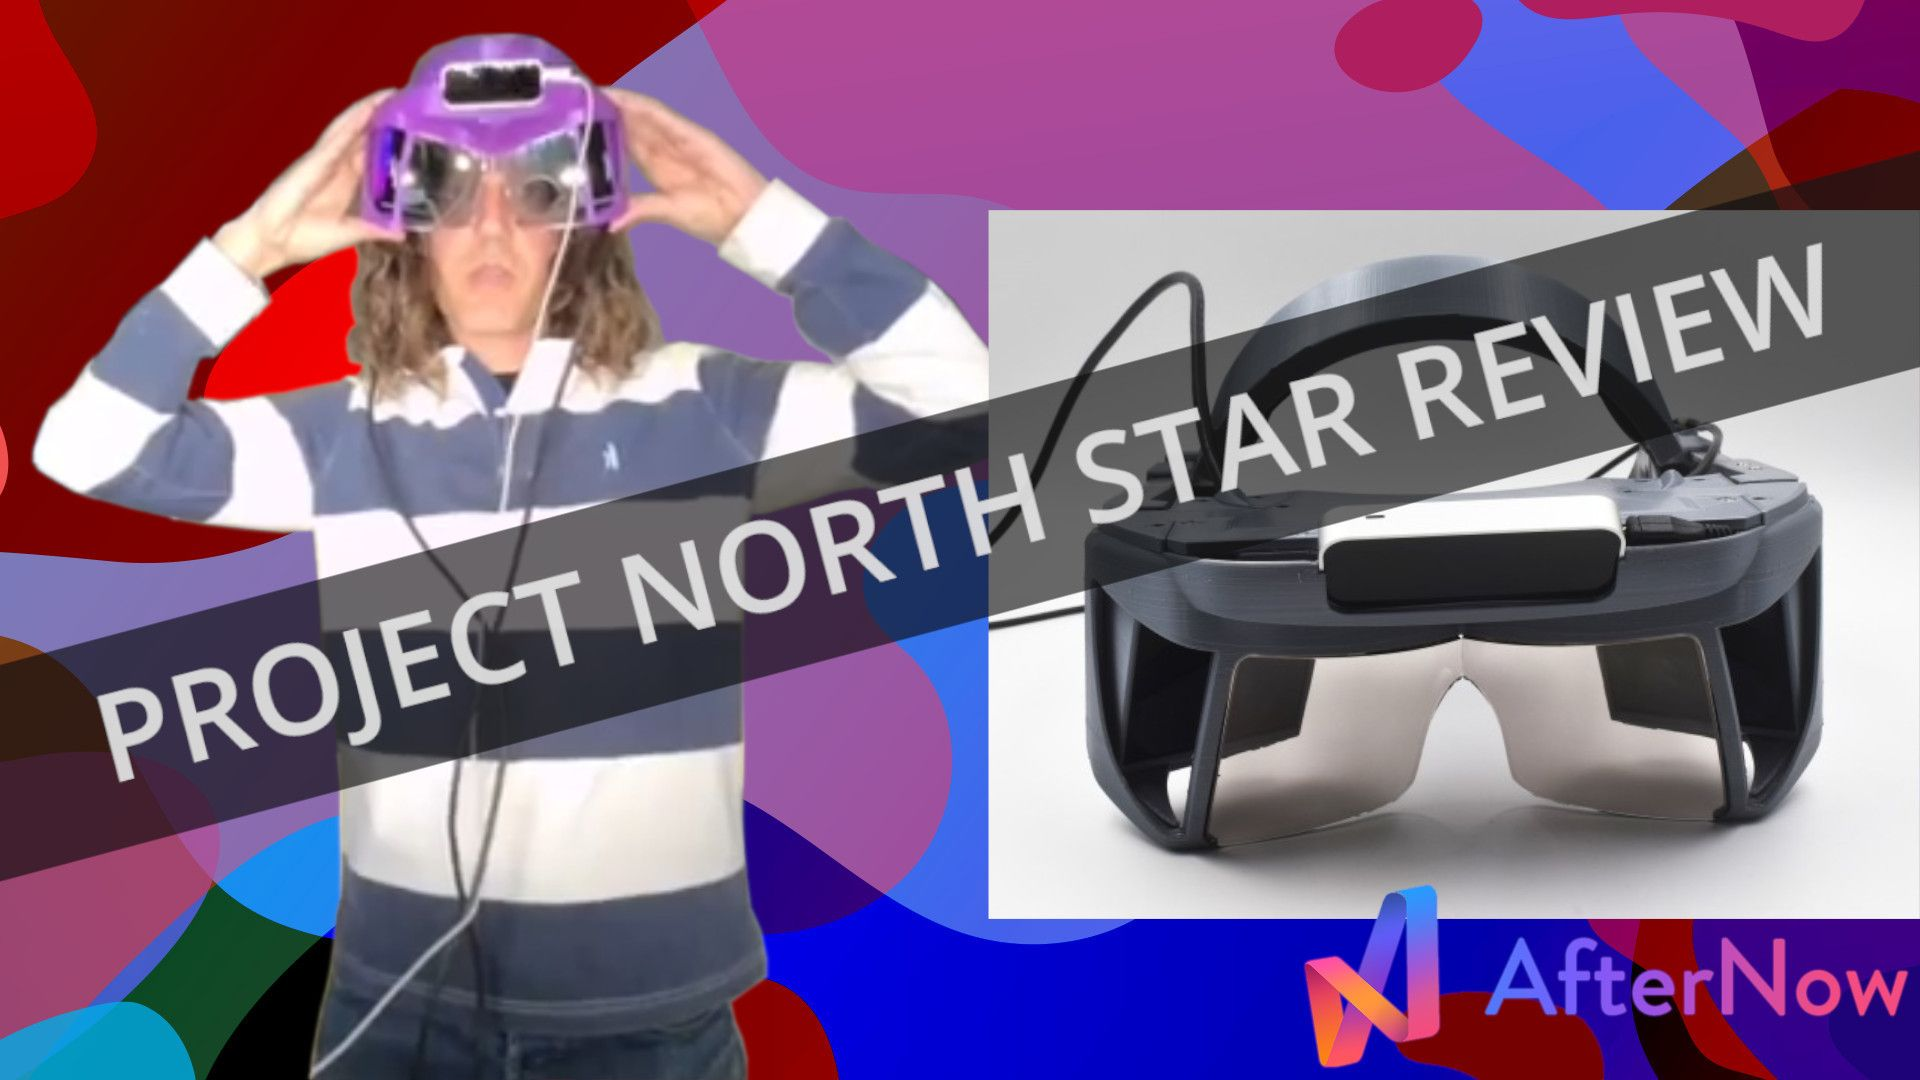 Project North Star Review